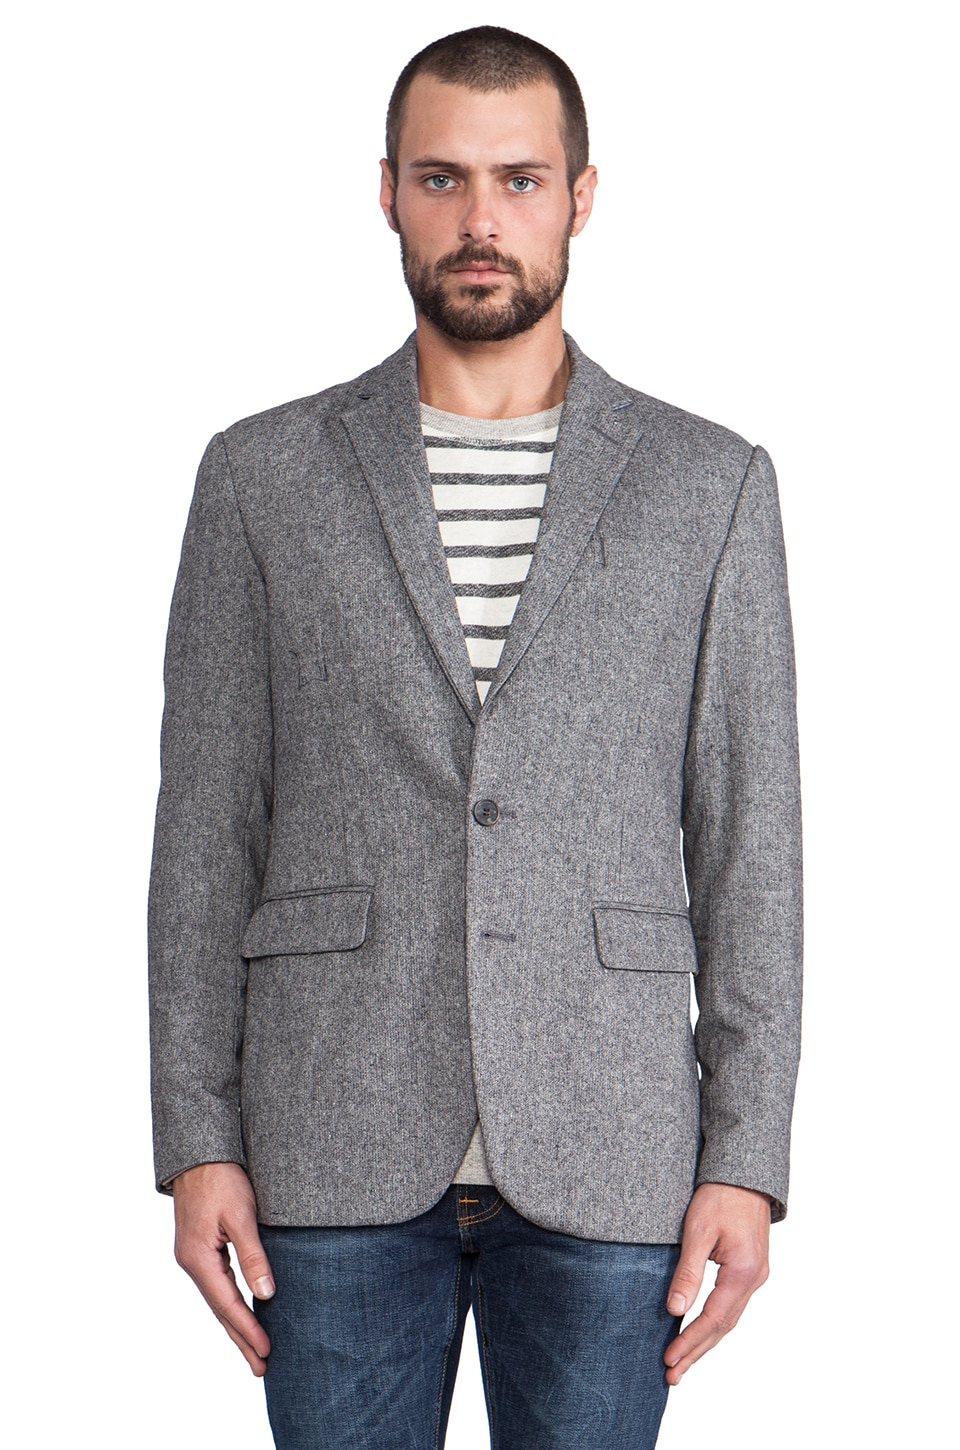 Shades of Grey by Micah Cohen 2 Button Blazer in Grey Tweed